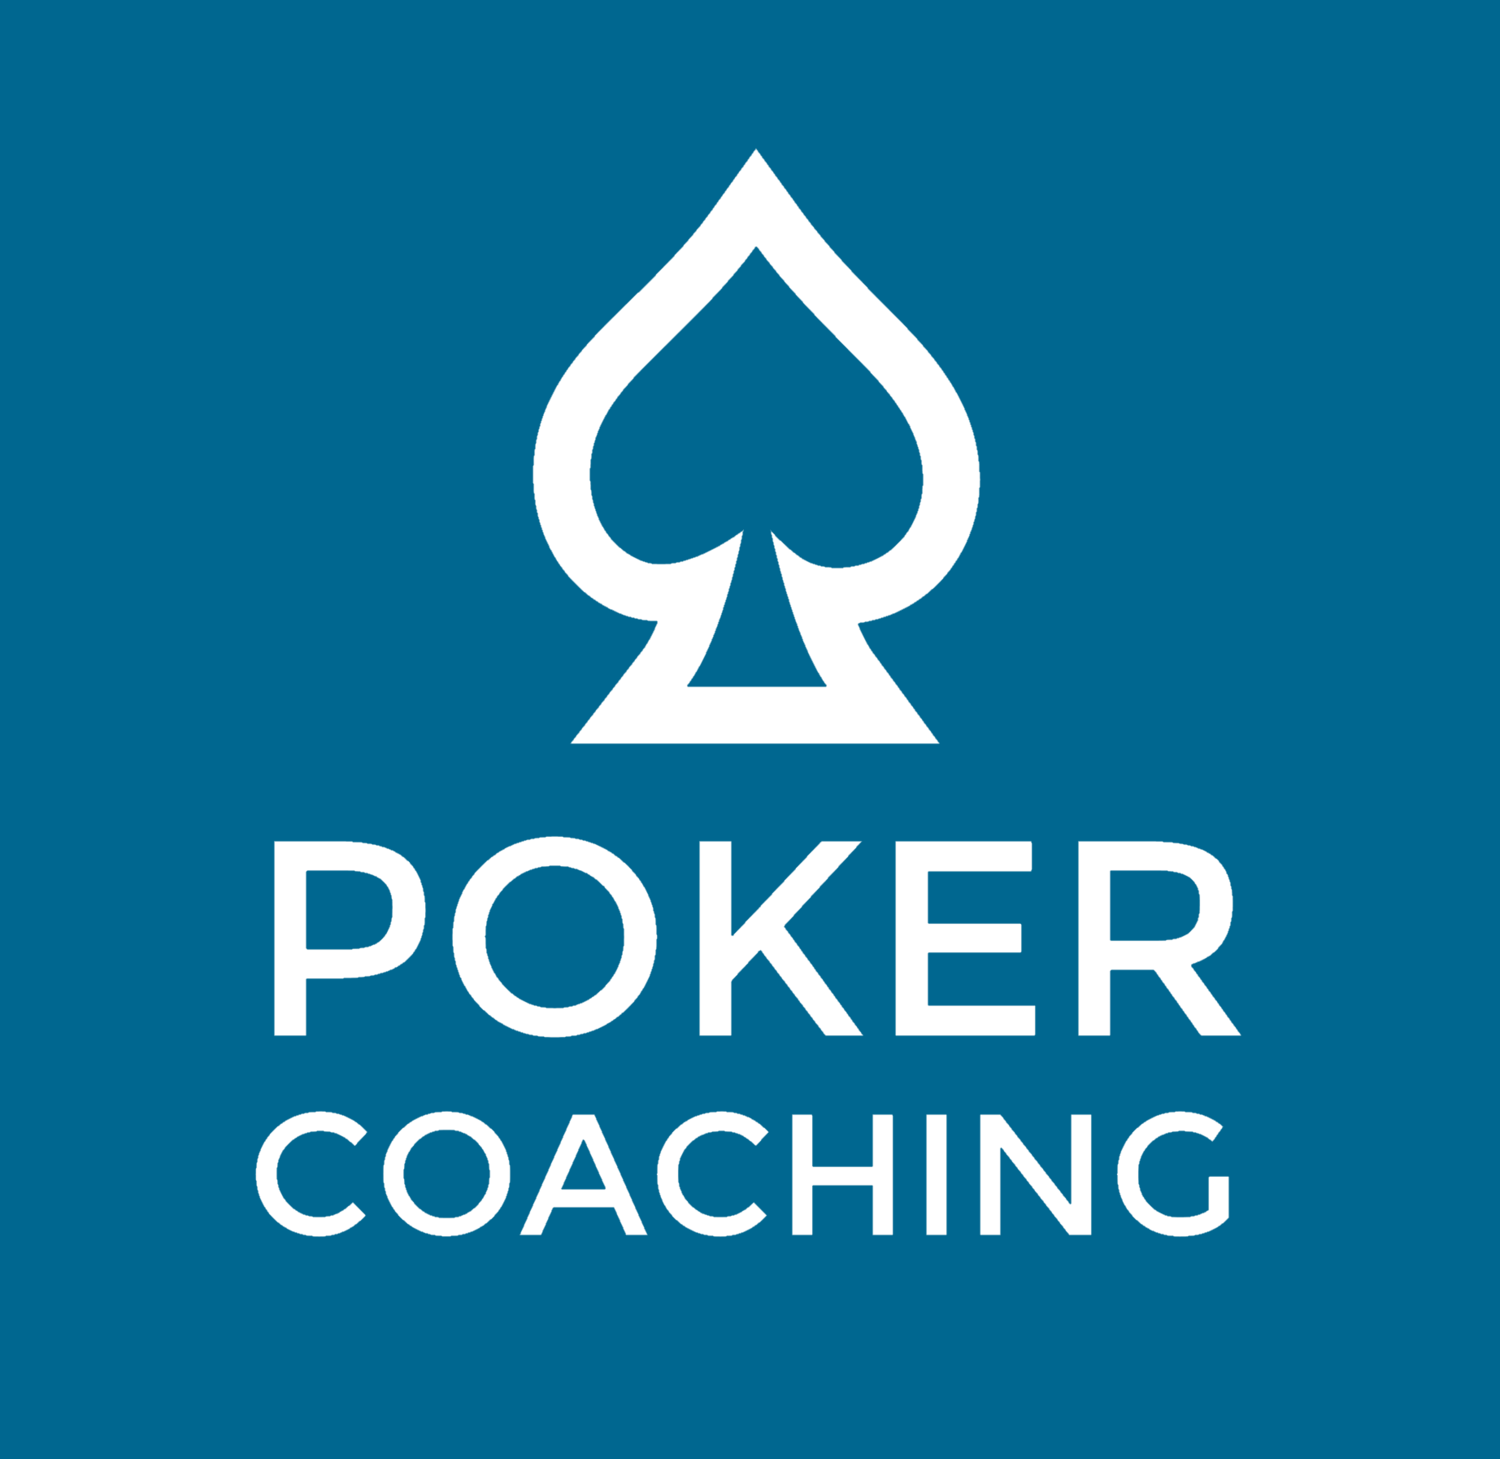 POKER-coaching-logo.png